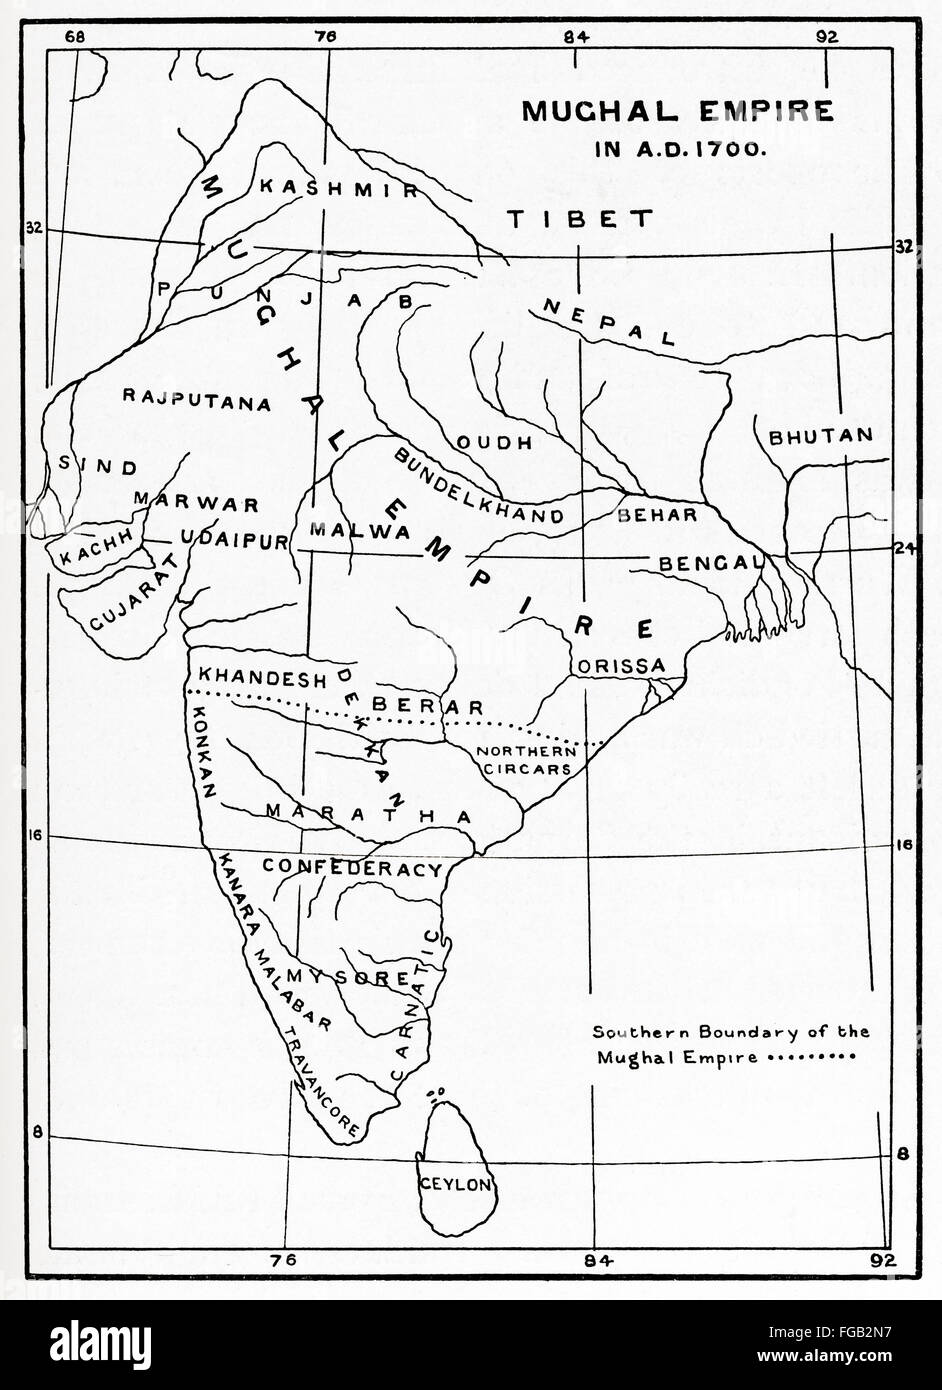 Map of the Mughal Empire in India, 1700. - Stock Image